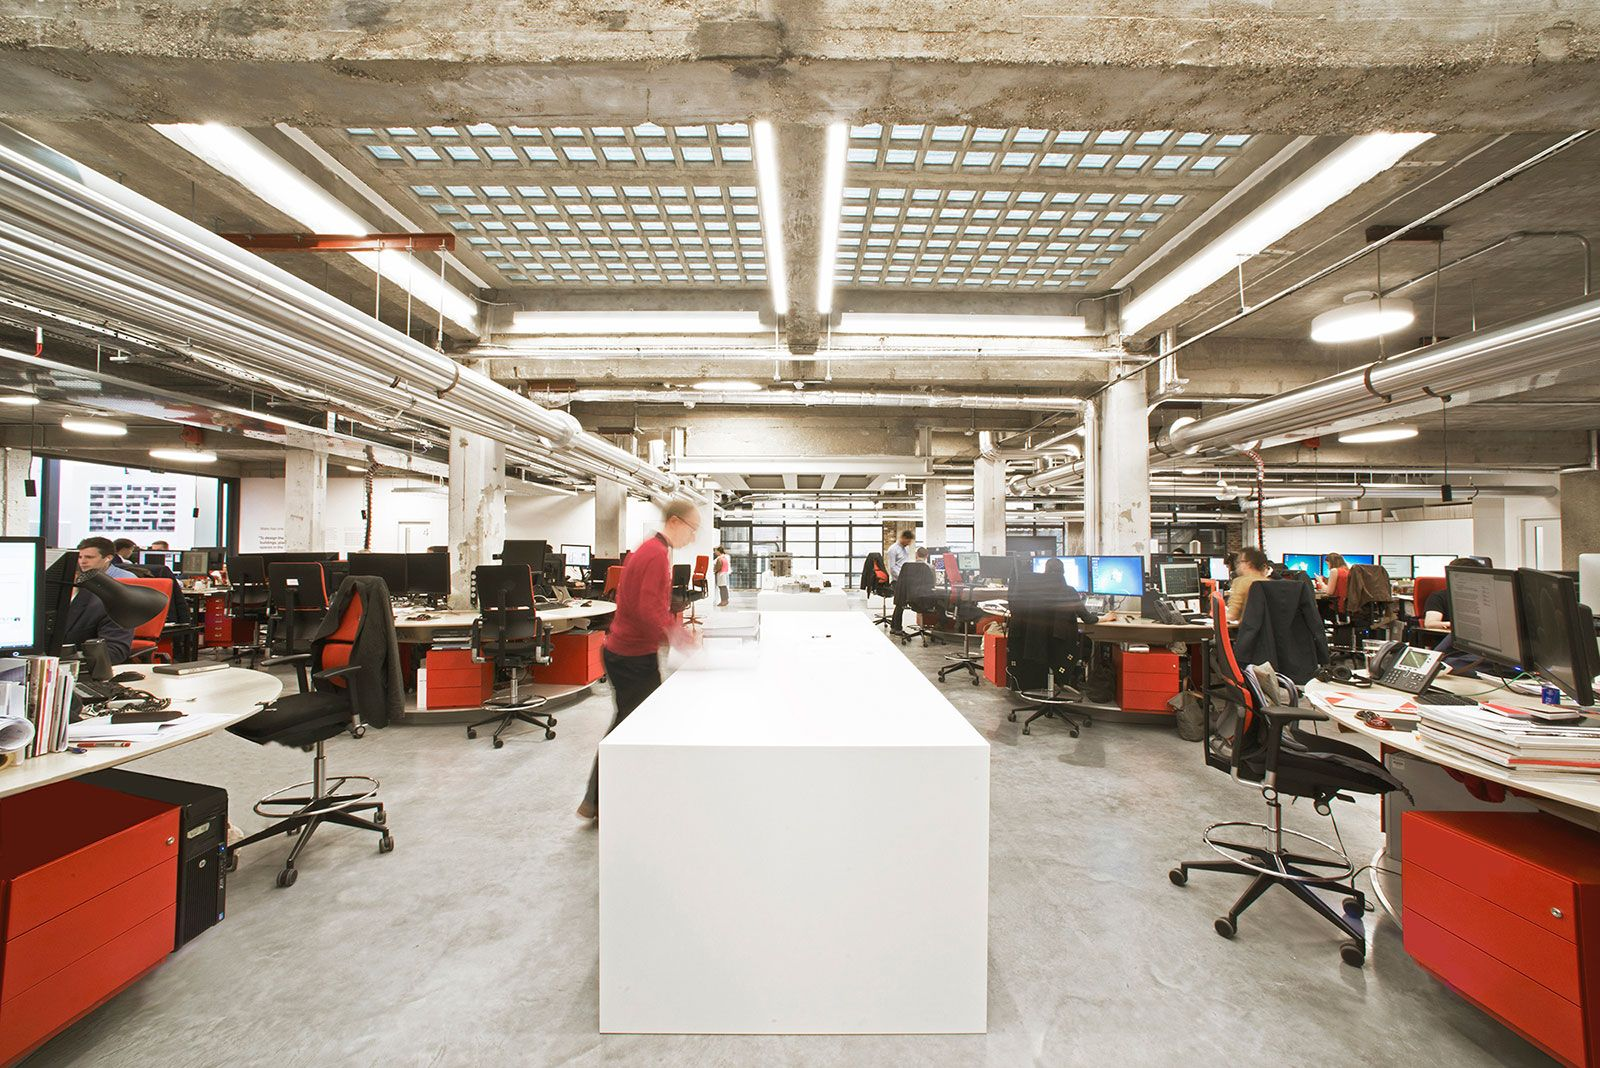 Architecture Office Studio make architects office   lighting - offices   pinterest   architects